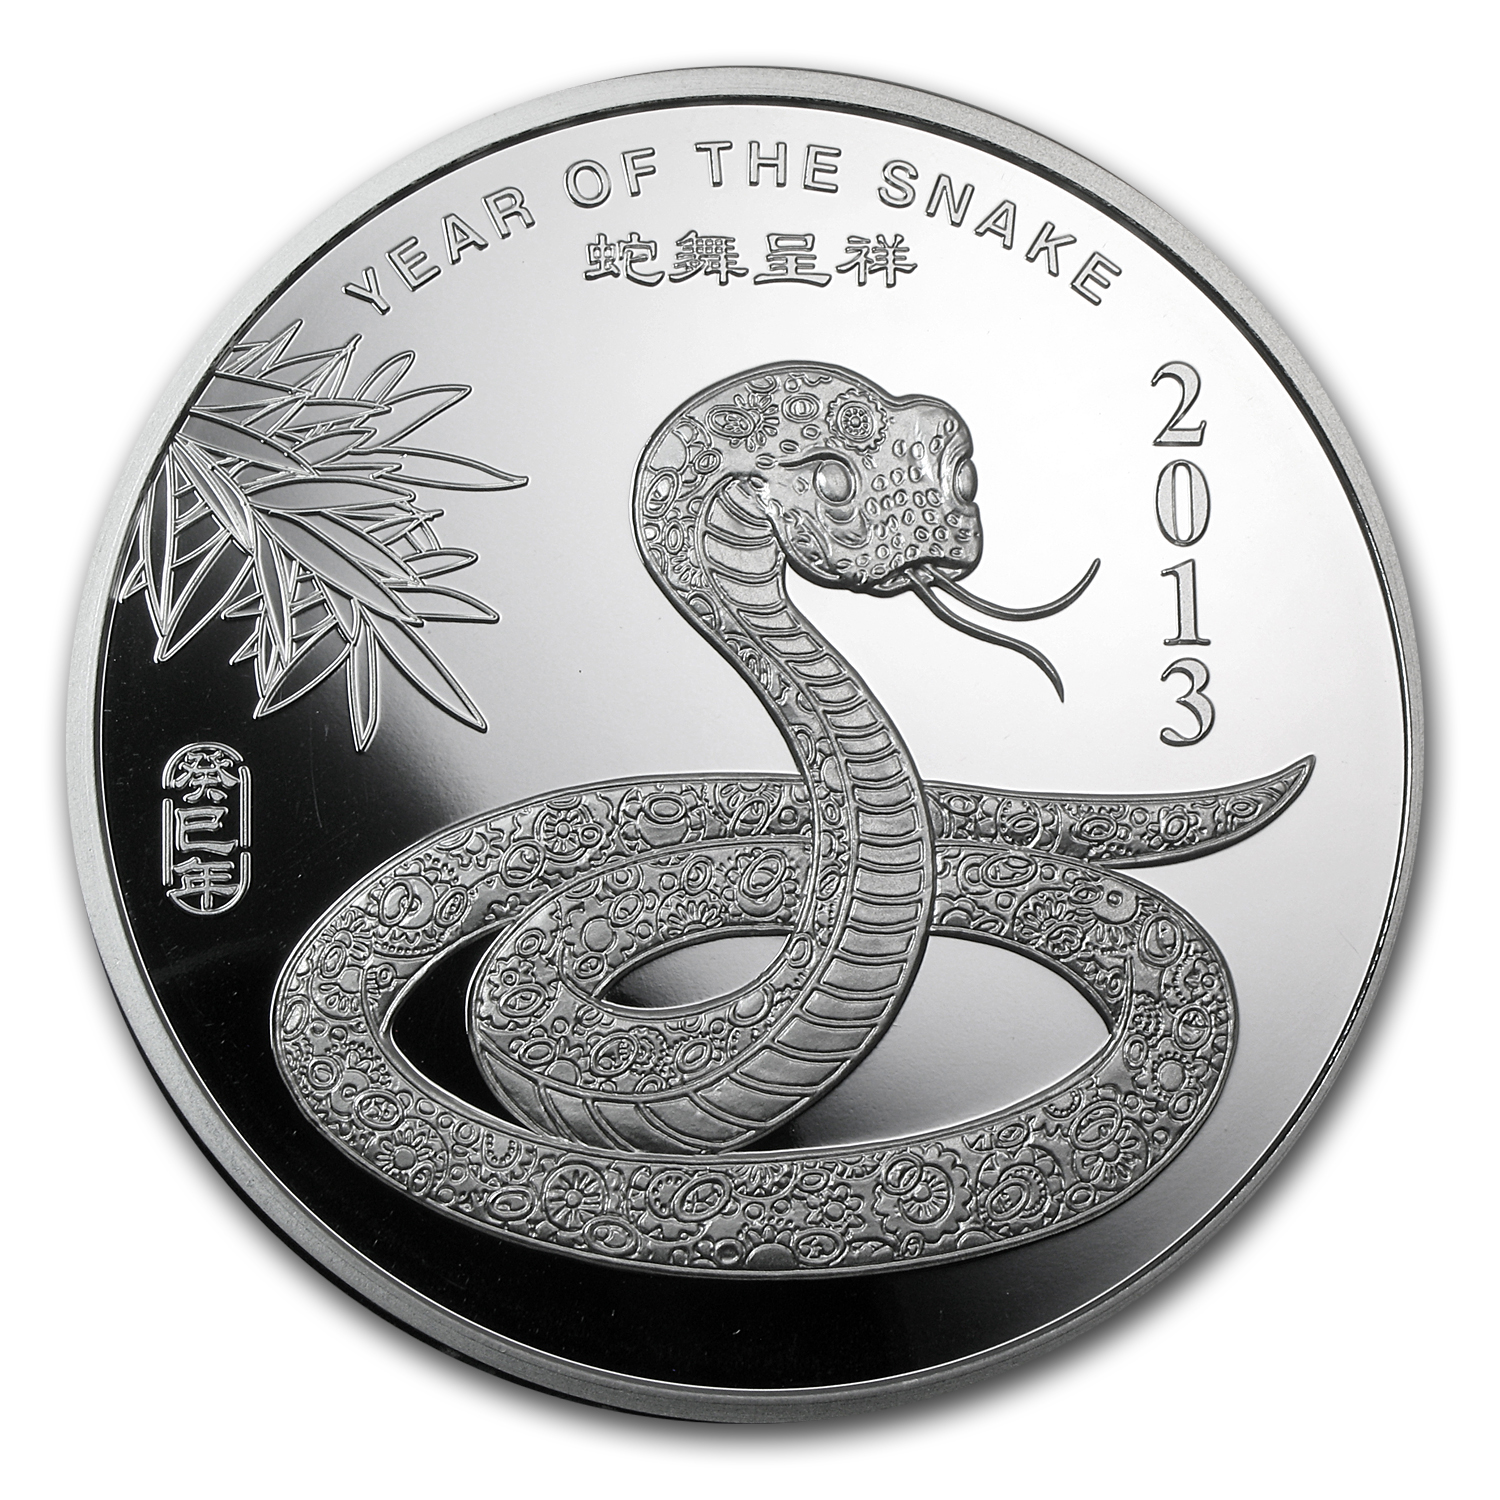 5 oz Silver Round - APMEX (2013 Year of the Snake)